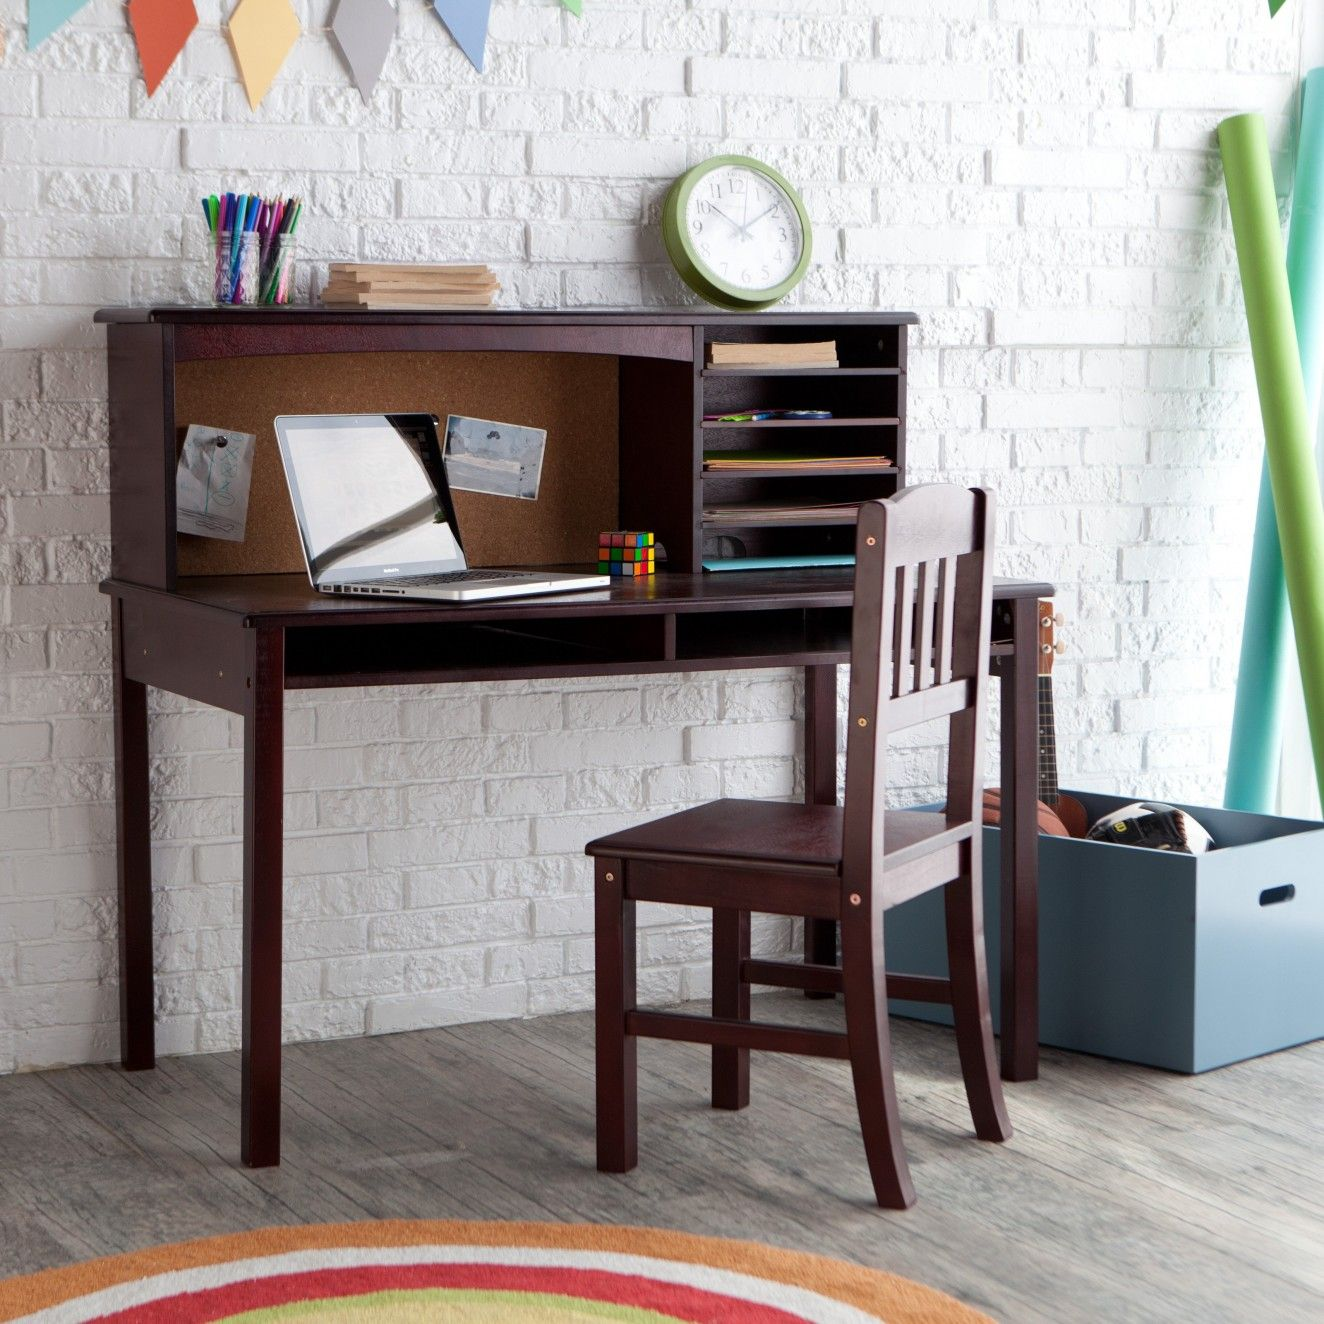 Desk and chair sets lowes paint colors interior check